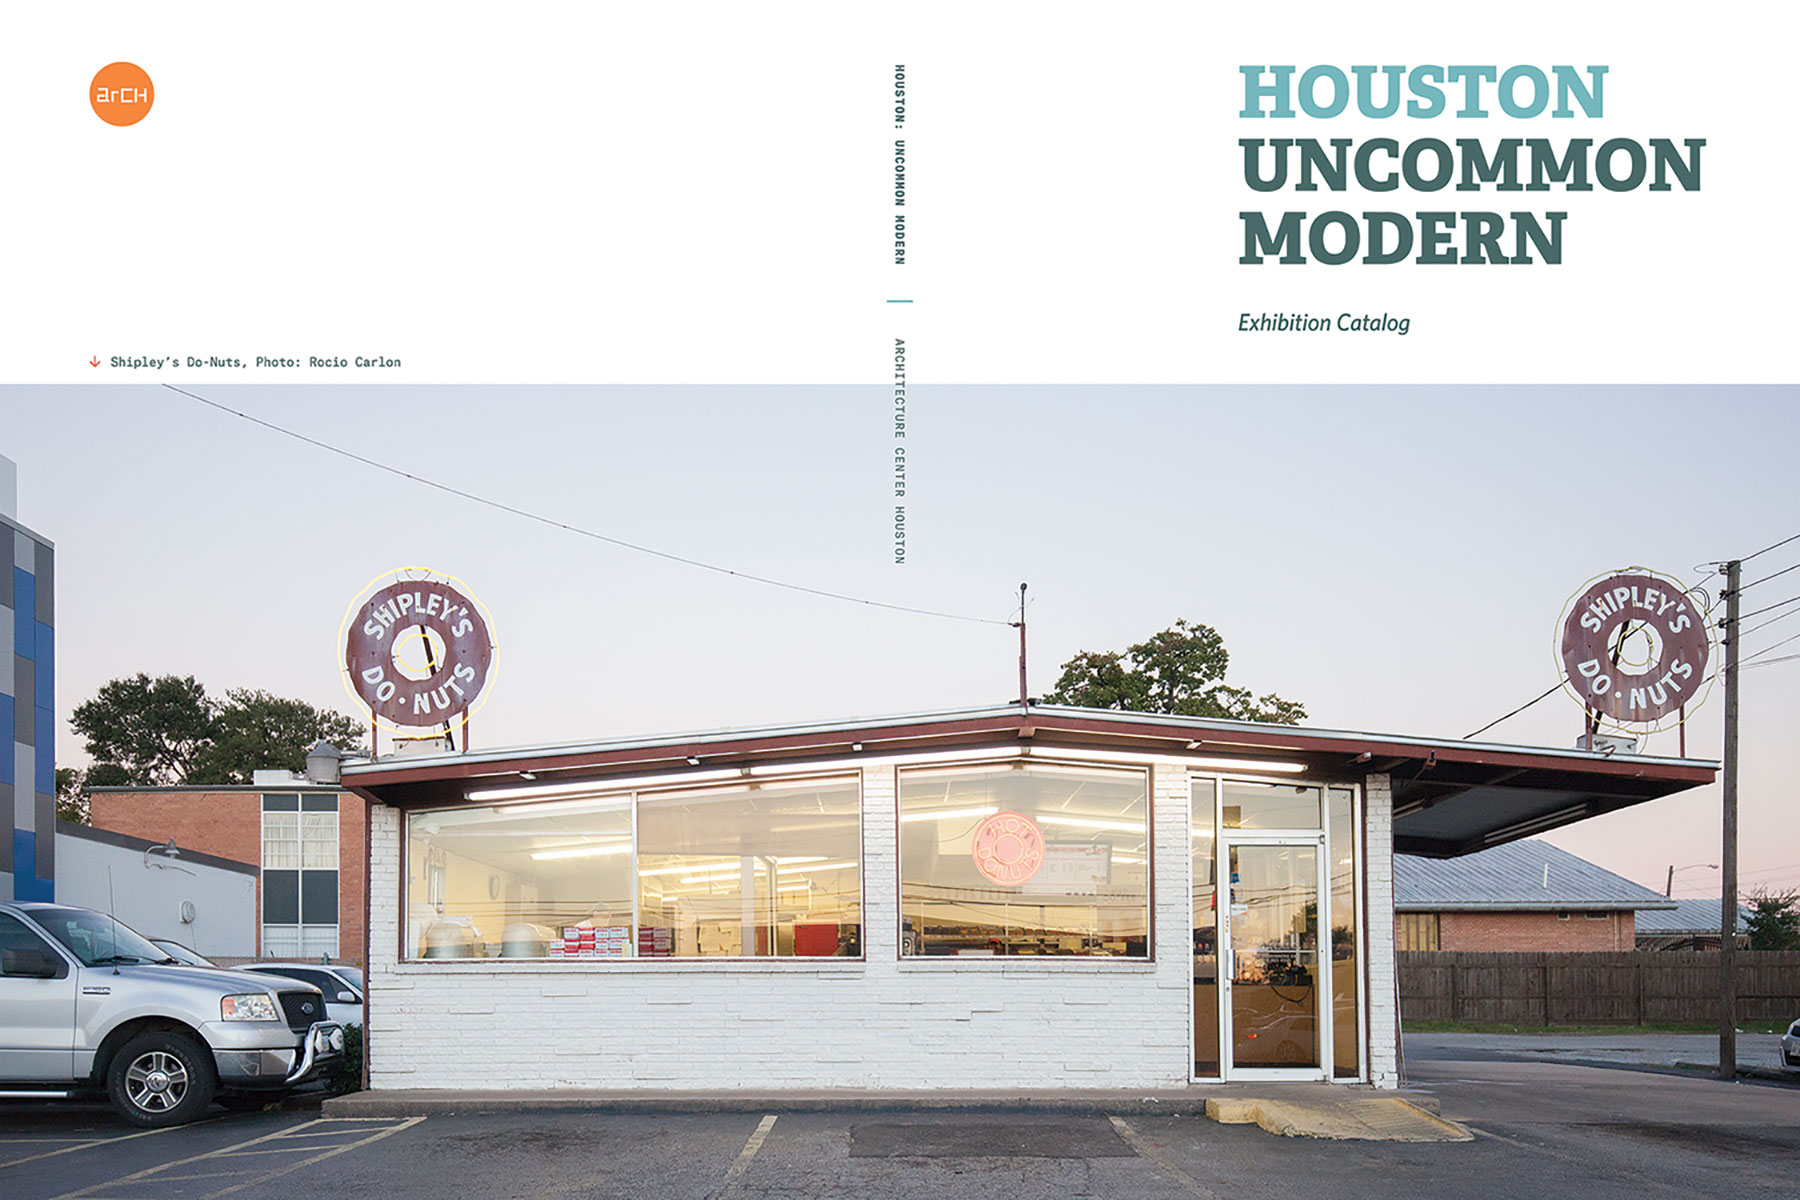 Martha Peterson Award:  Delaney Harris-Finch, Anna Mod and Architecture Center Houston for the exhibition and catalog  Houston: Uncommon Modern